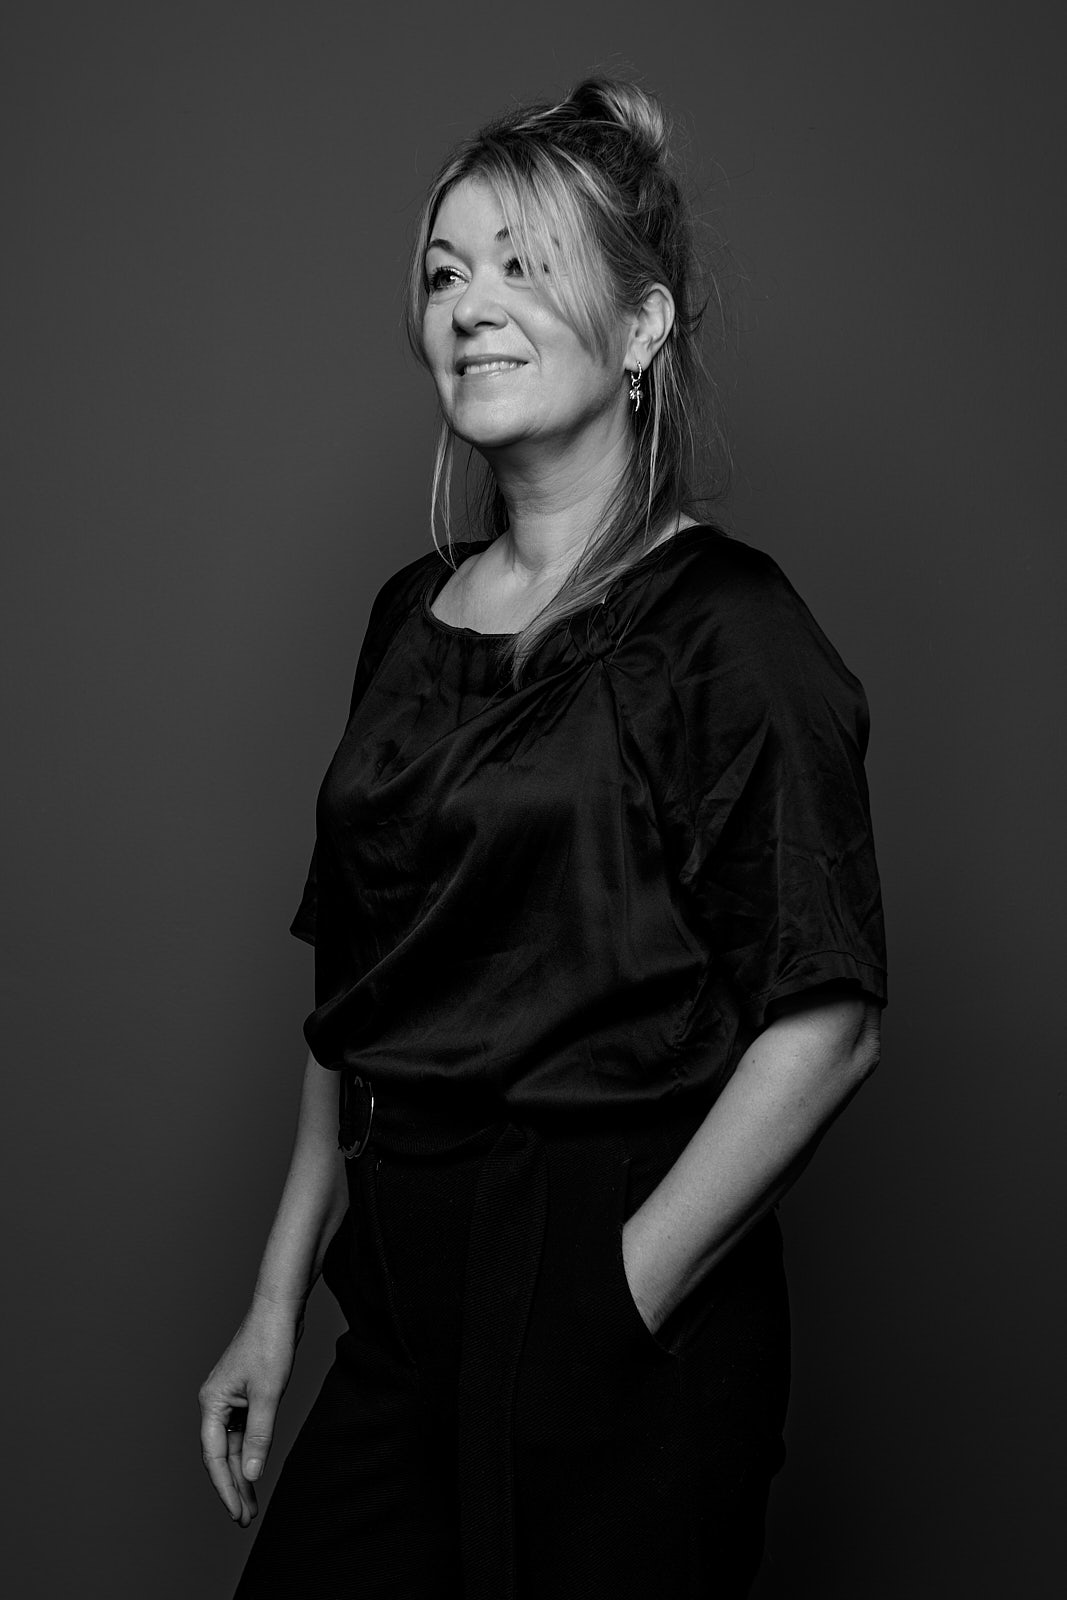 Previously she worked as a set dresser for television, now she dresses houses with passion. Her design heroes are Gio Ponti and Draga & Aurel. She adapts the interior design to the style of the building and the wishes of the residents. Her passion for textiles and curtains is reflected in her interior design